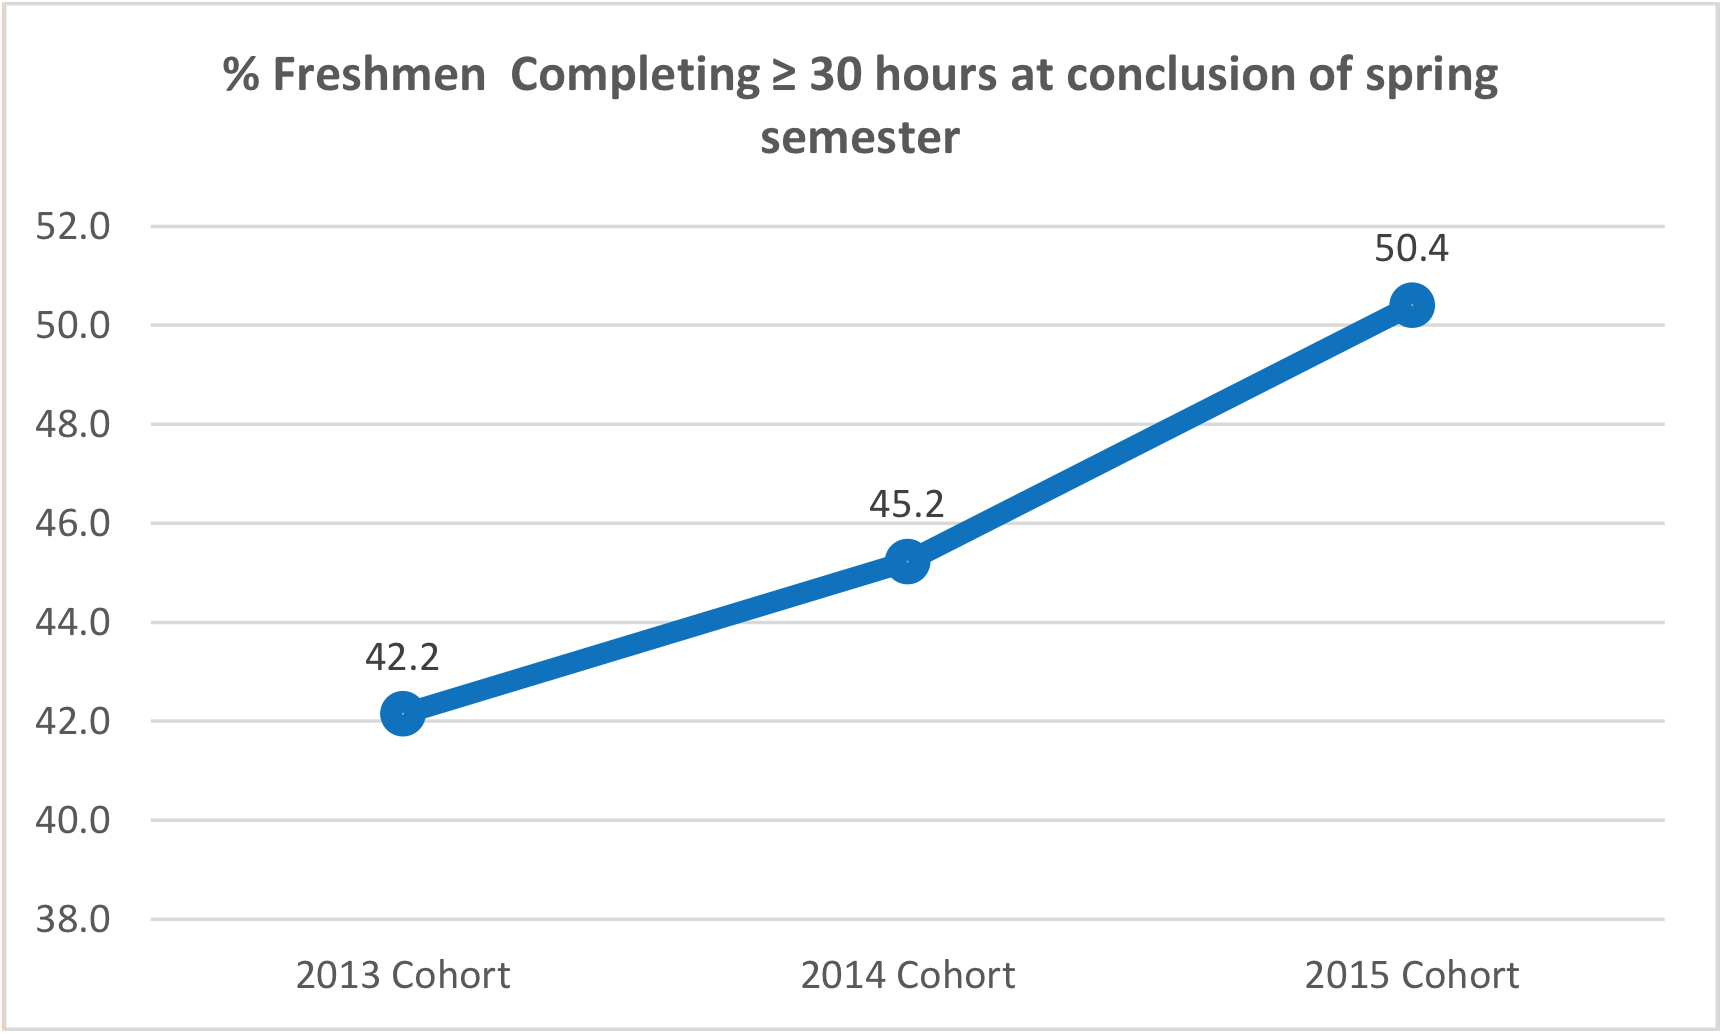 Figure 2, MTSU freshmen students completing 30 or more hours at close of spring semester